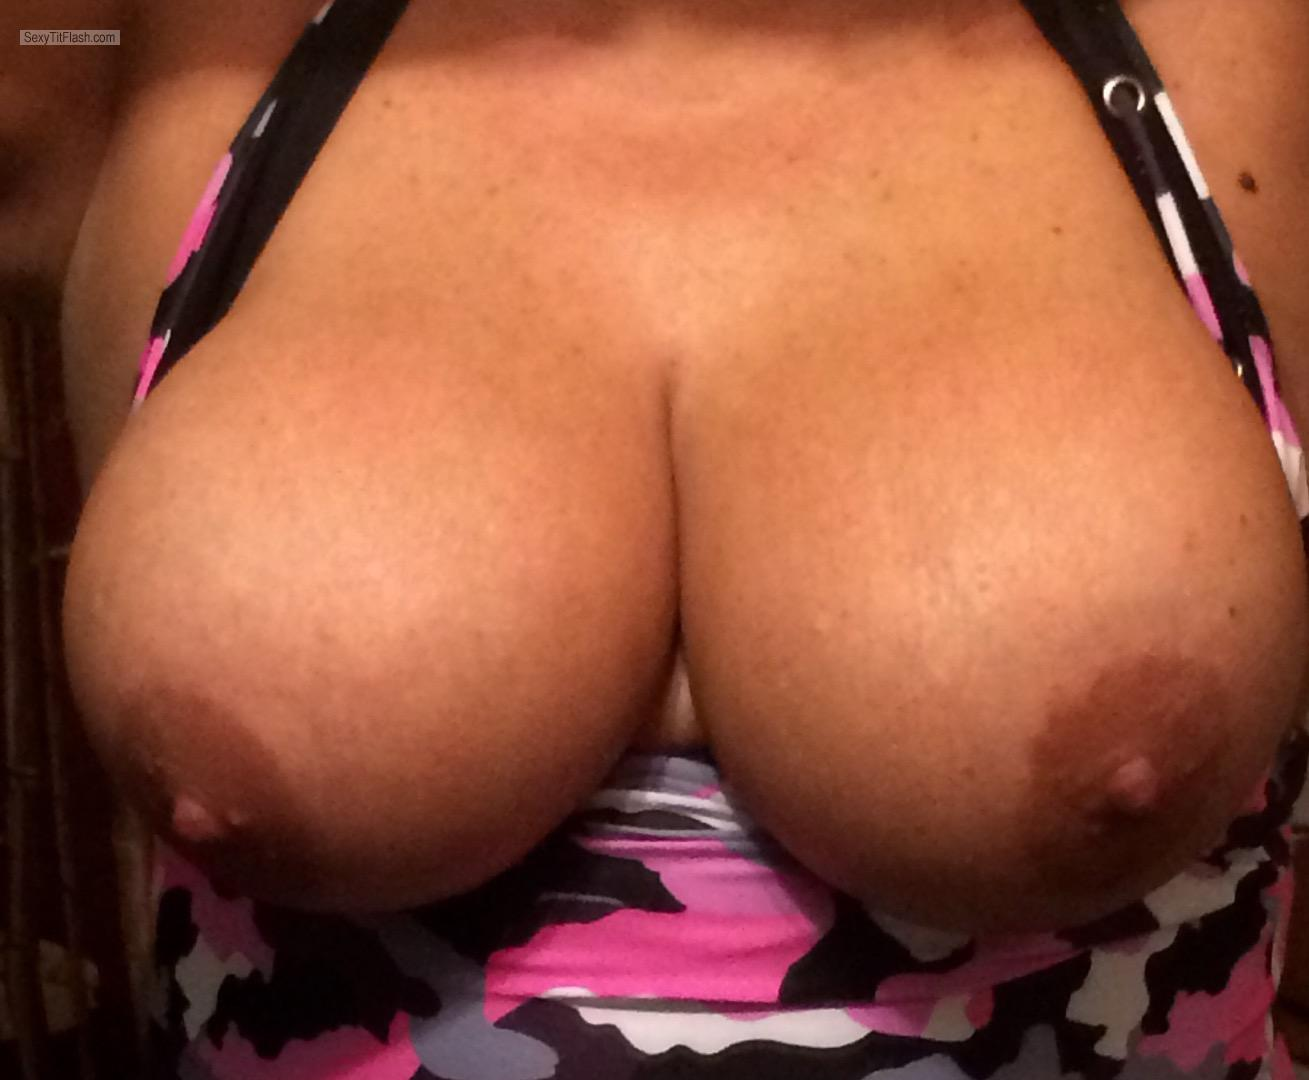 My Very big Tits Bigtits71